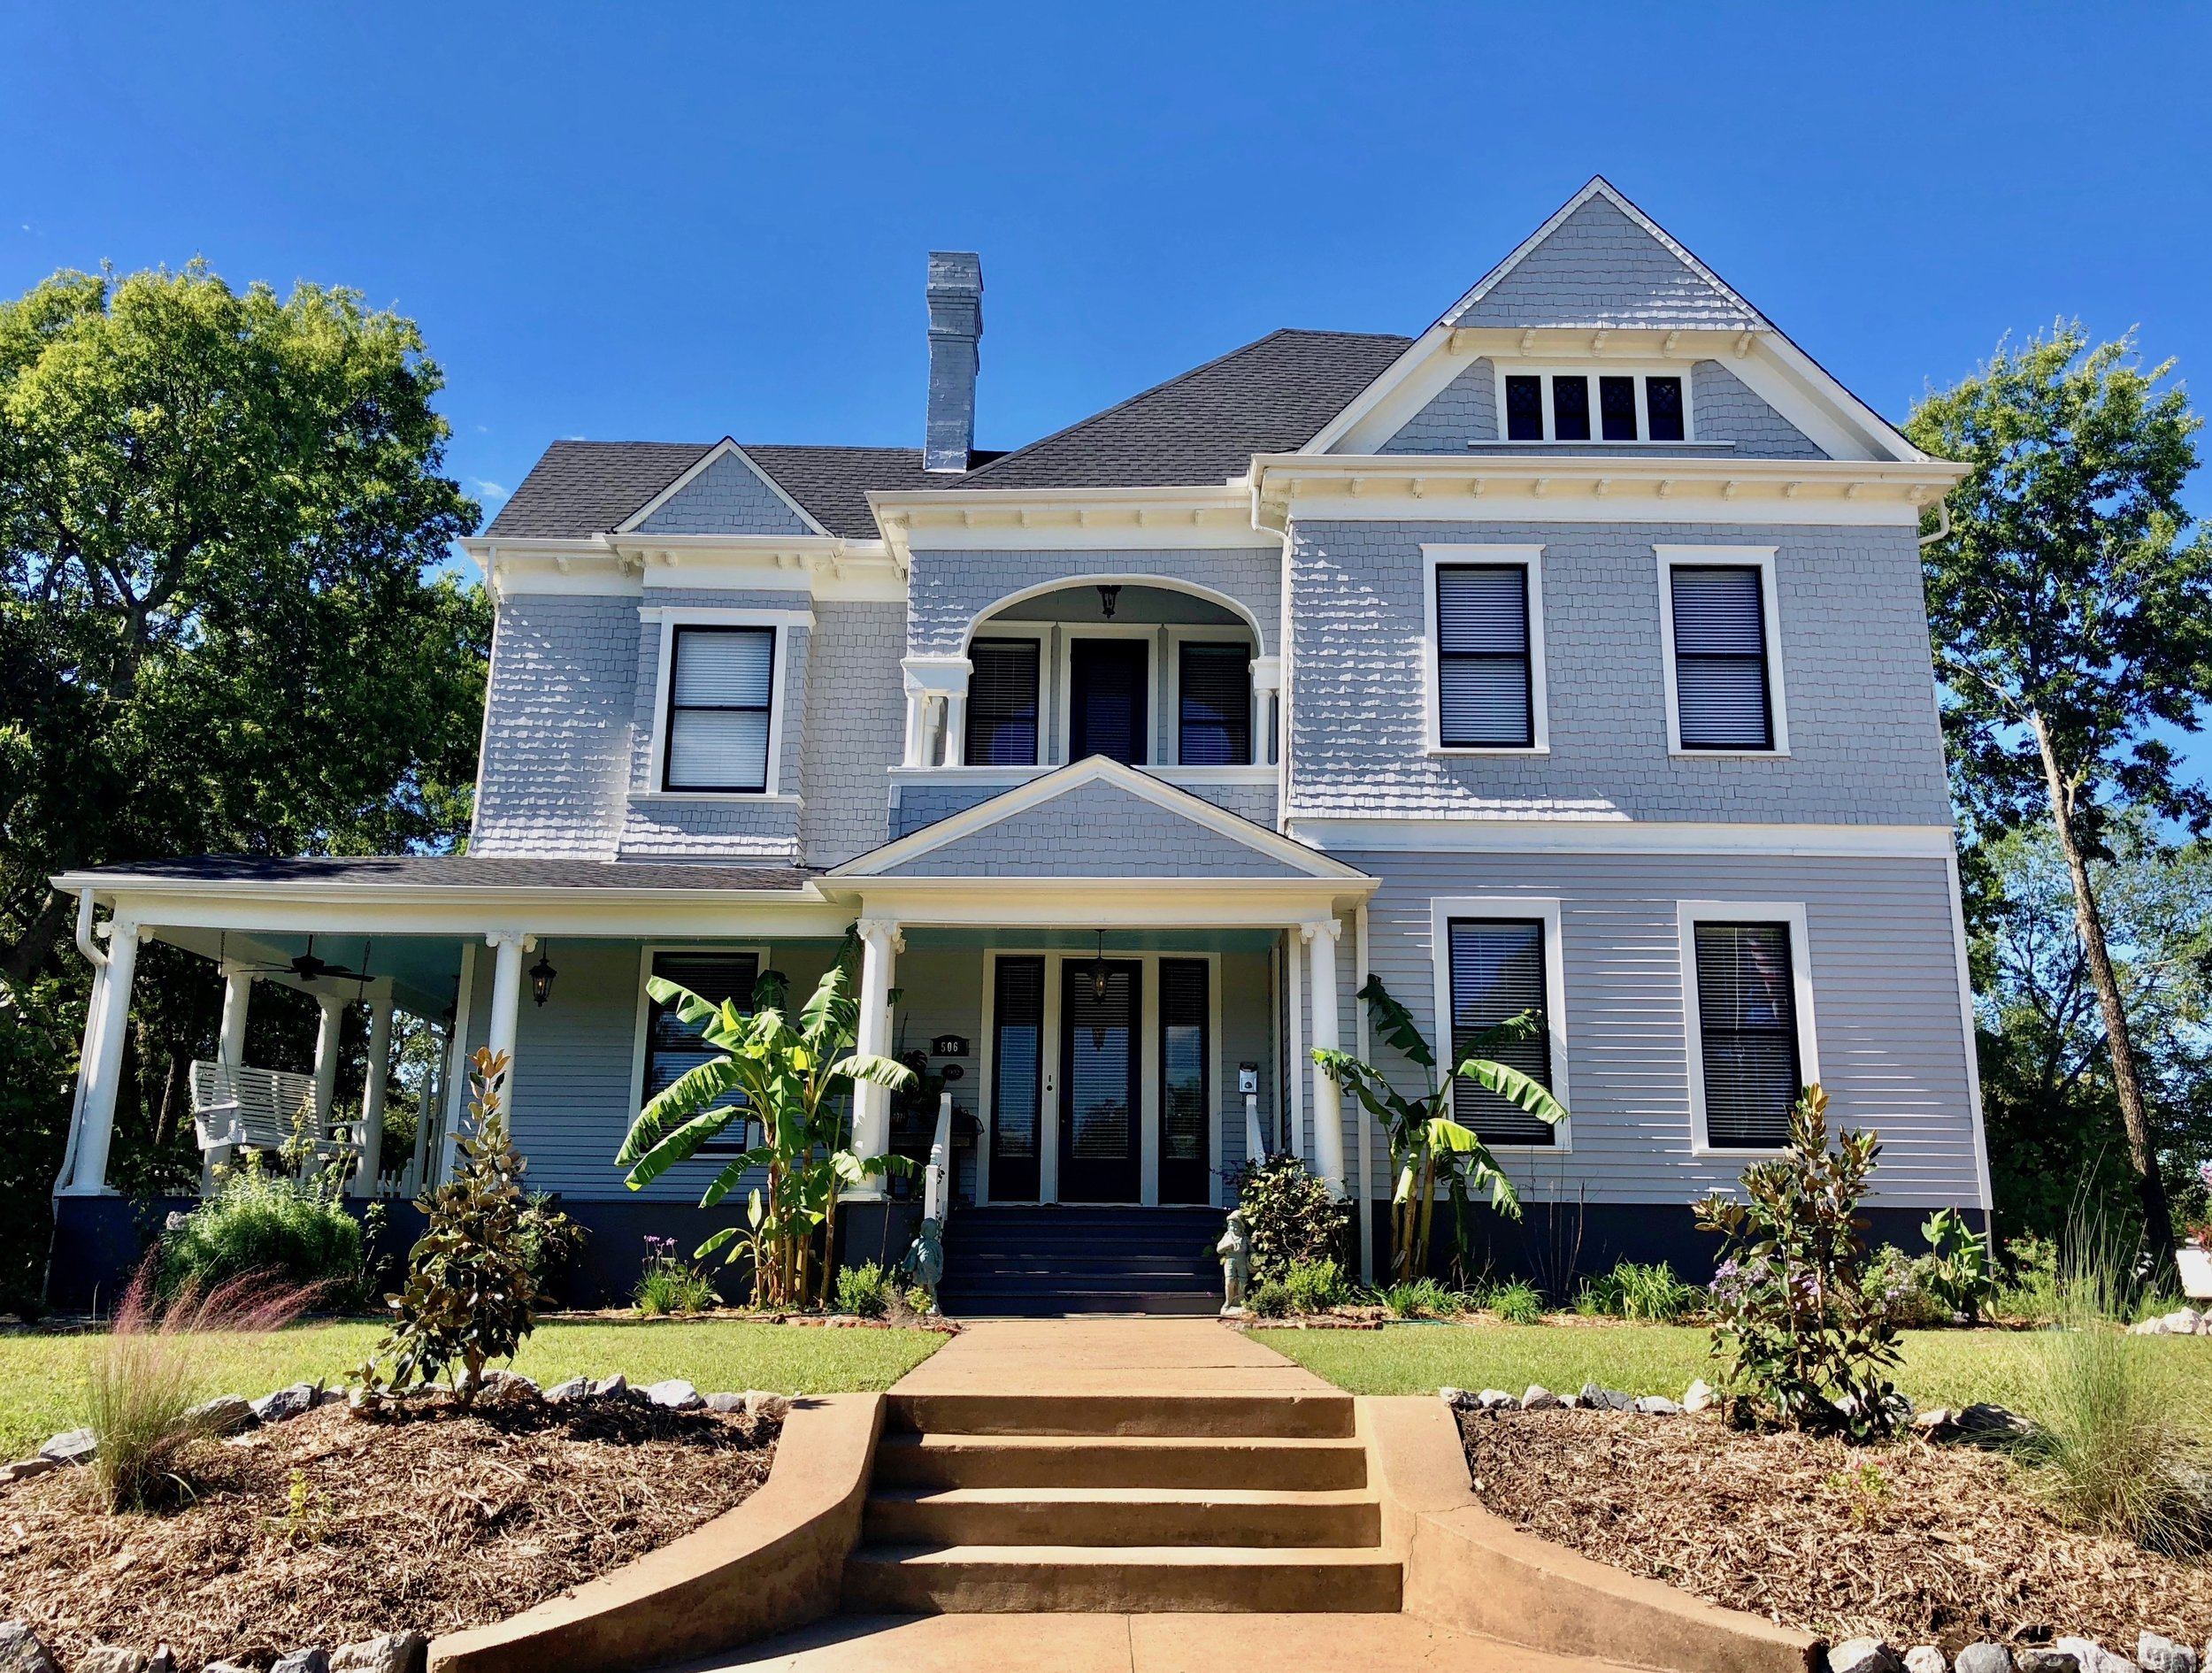 """The fully restored """"Brown-Tuck House"""" an American Whisky Baron's Mansion, built 1902 with ties to Jack Daniels is THE GRAND HOUSE — SHERMAN TEXAS"""